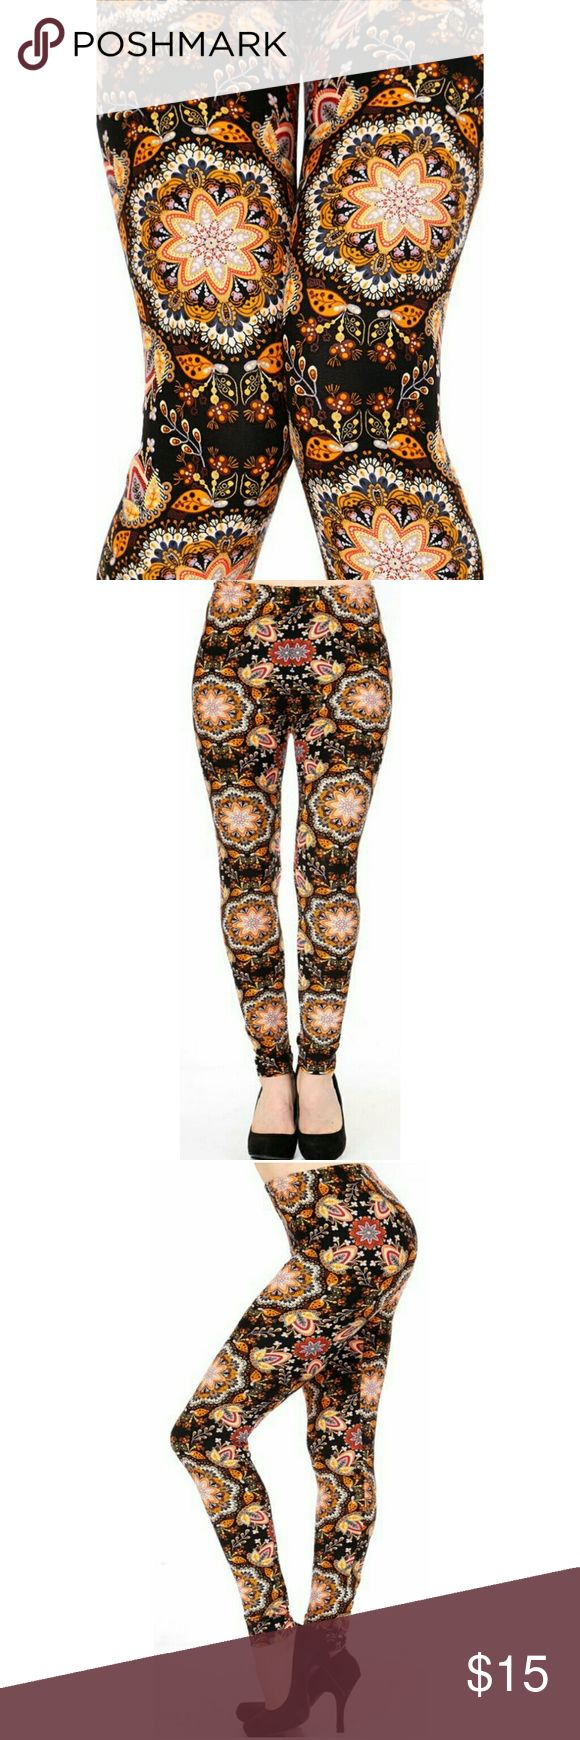 "(Plus) Curvy Abstract Tribal Print Leggings Peachskin print full leggings. Tribal black and orange abstract  print. Highwaisted with 1"" Wide elastic waistband. Very soft. Great to wear dressed up with heels or casual with tennies. New in package.(N218))  L 37"" I 27"" R 10. Fits XL to 2X (14-22) comfortably. One size BohoBeauRoseBoutique Pants Leggings"